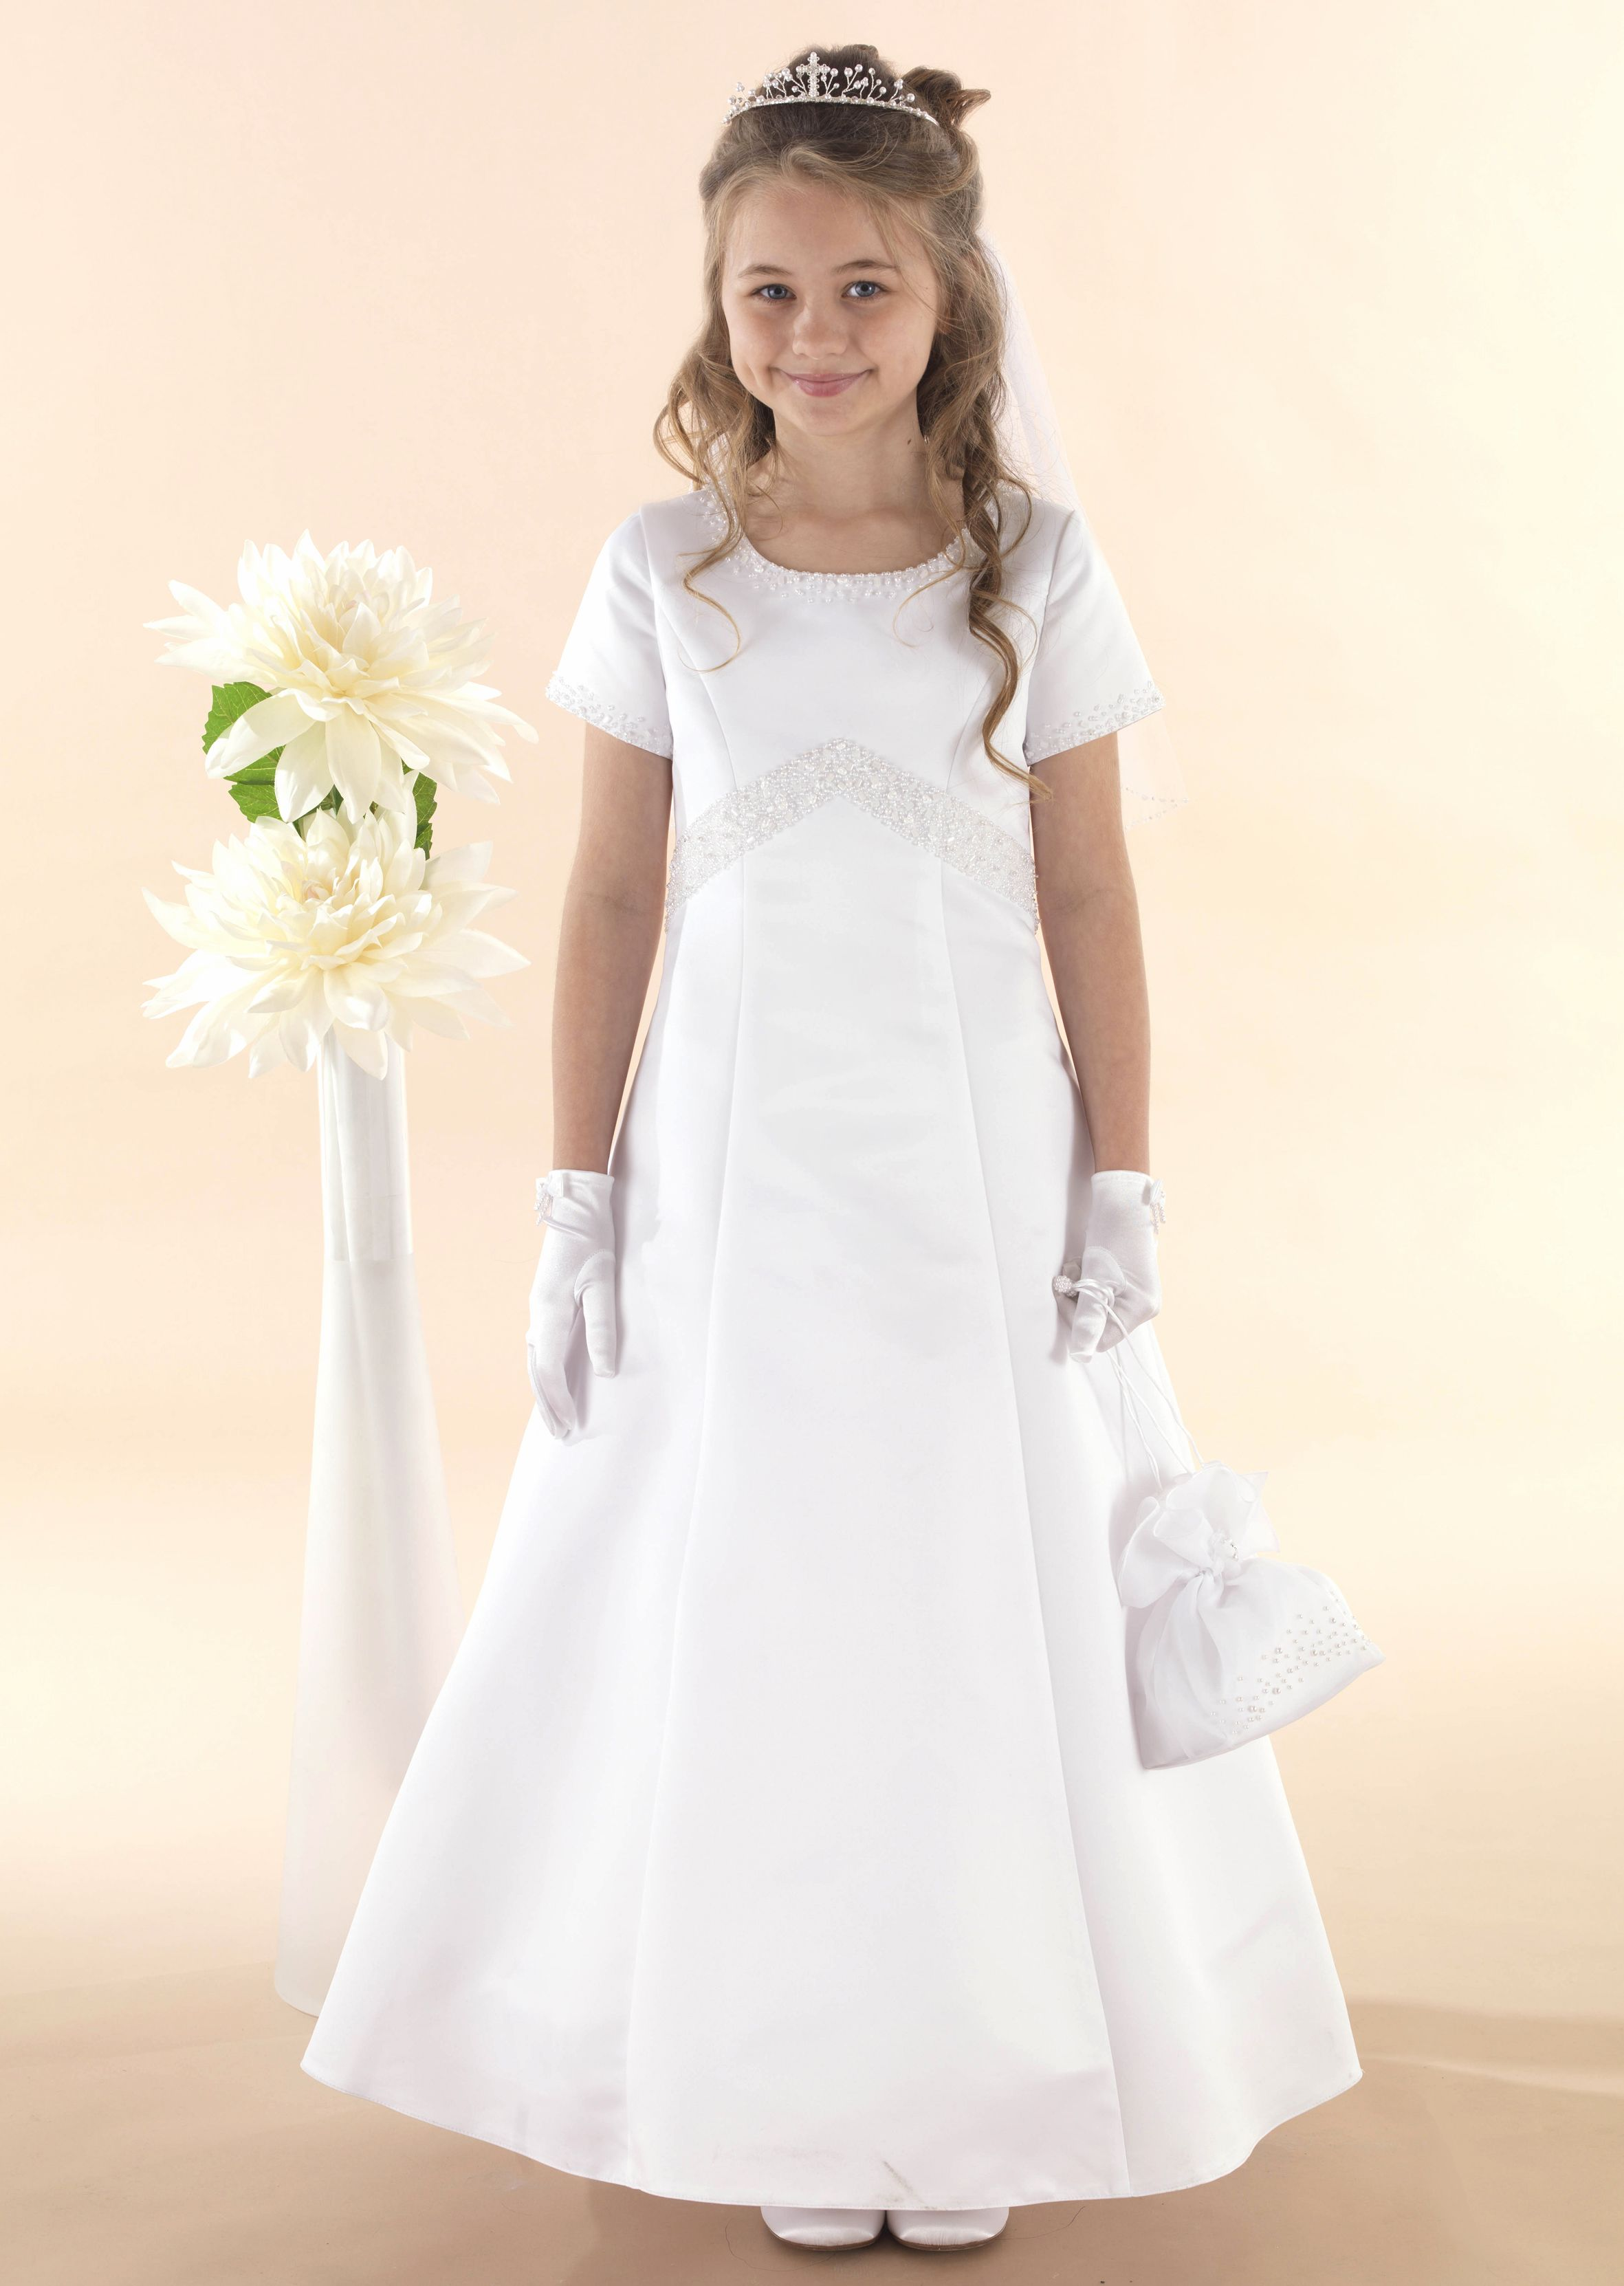 Satin a line encrusted bead design communion dress grace linzi white full length a line beaded first communion dress with sleeves new 2015 grace linzi jay communion dress age 6 7 8 years girls ombrellifo Image collections